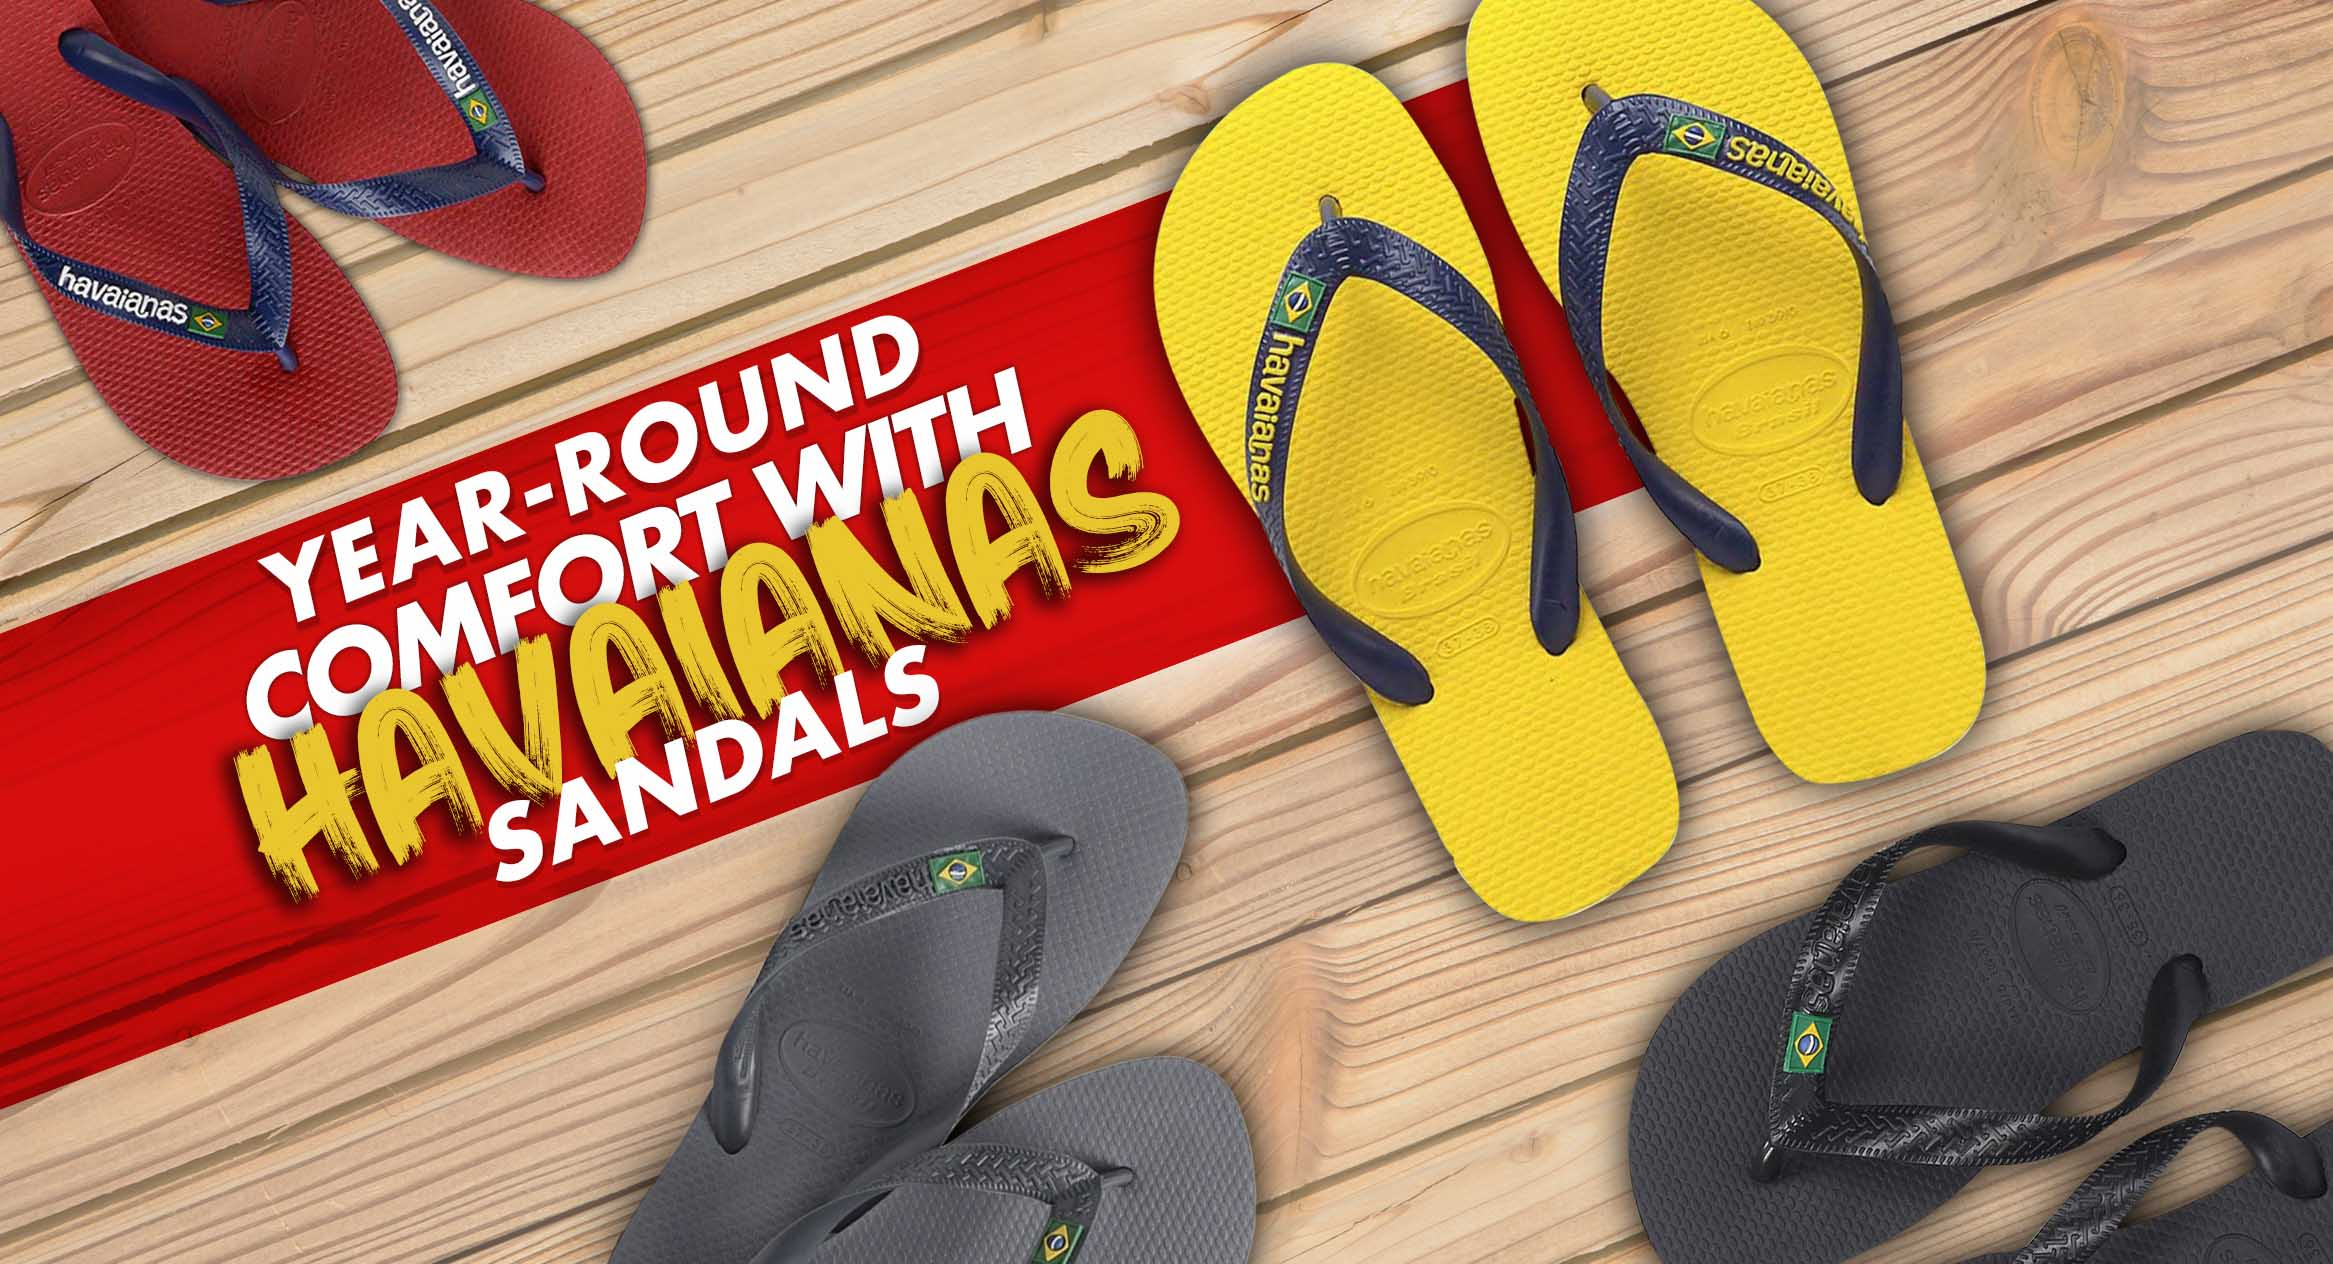 Year-Round Comfort with Havaianas Sandals